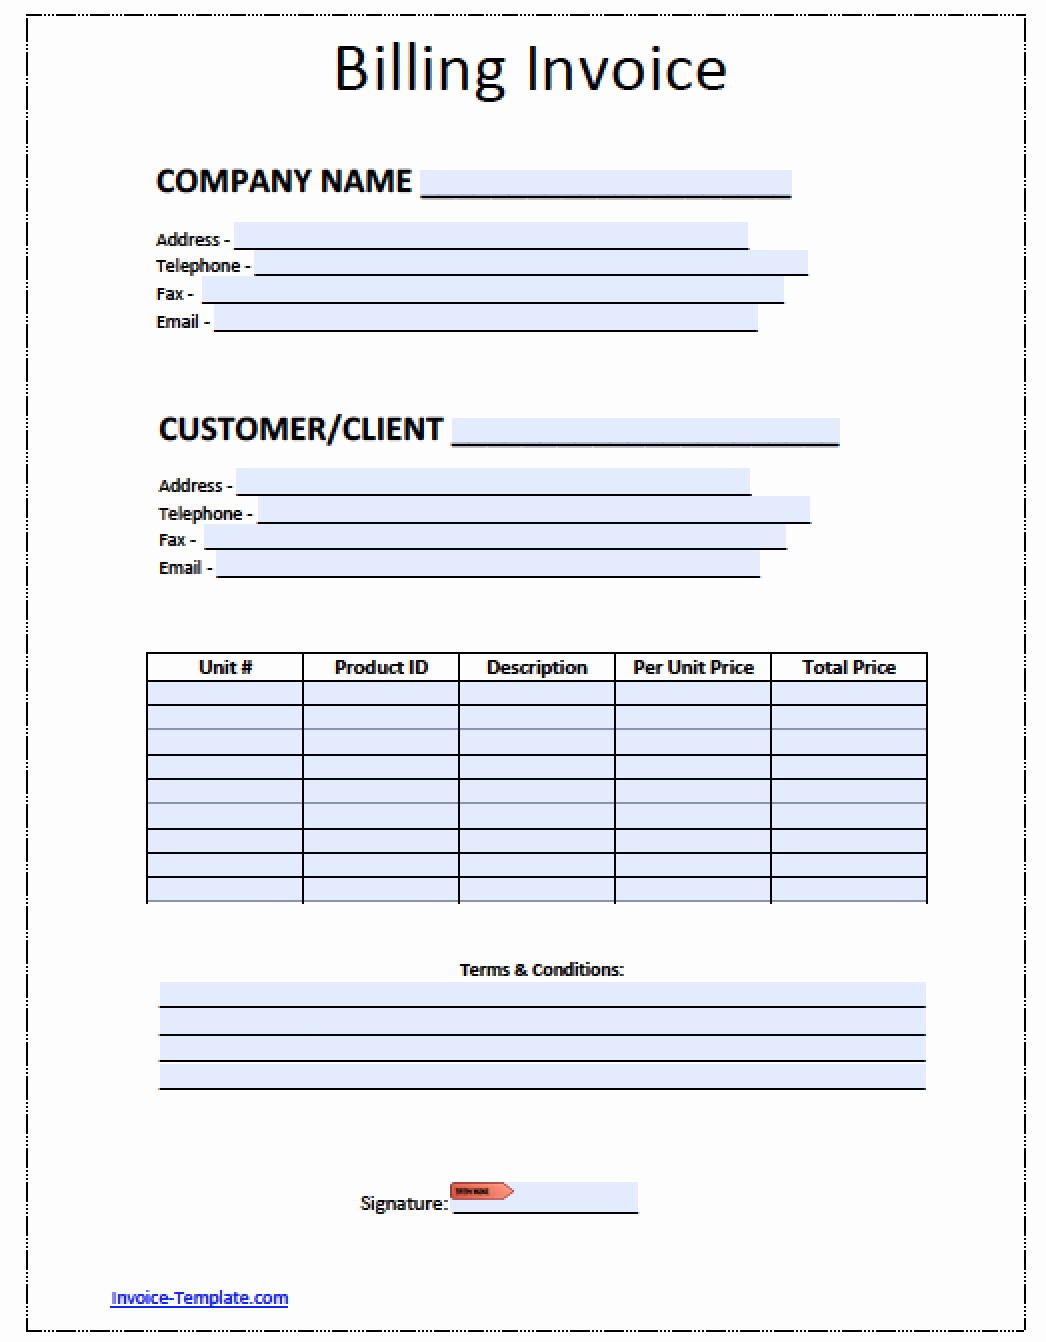 Microsoft Word Invoice Template Free Inspirational Free Blank Invoice Template for Excel